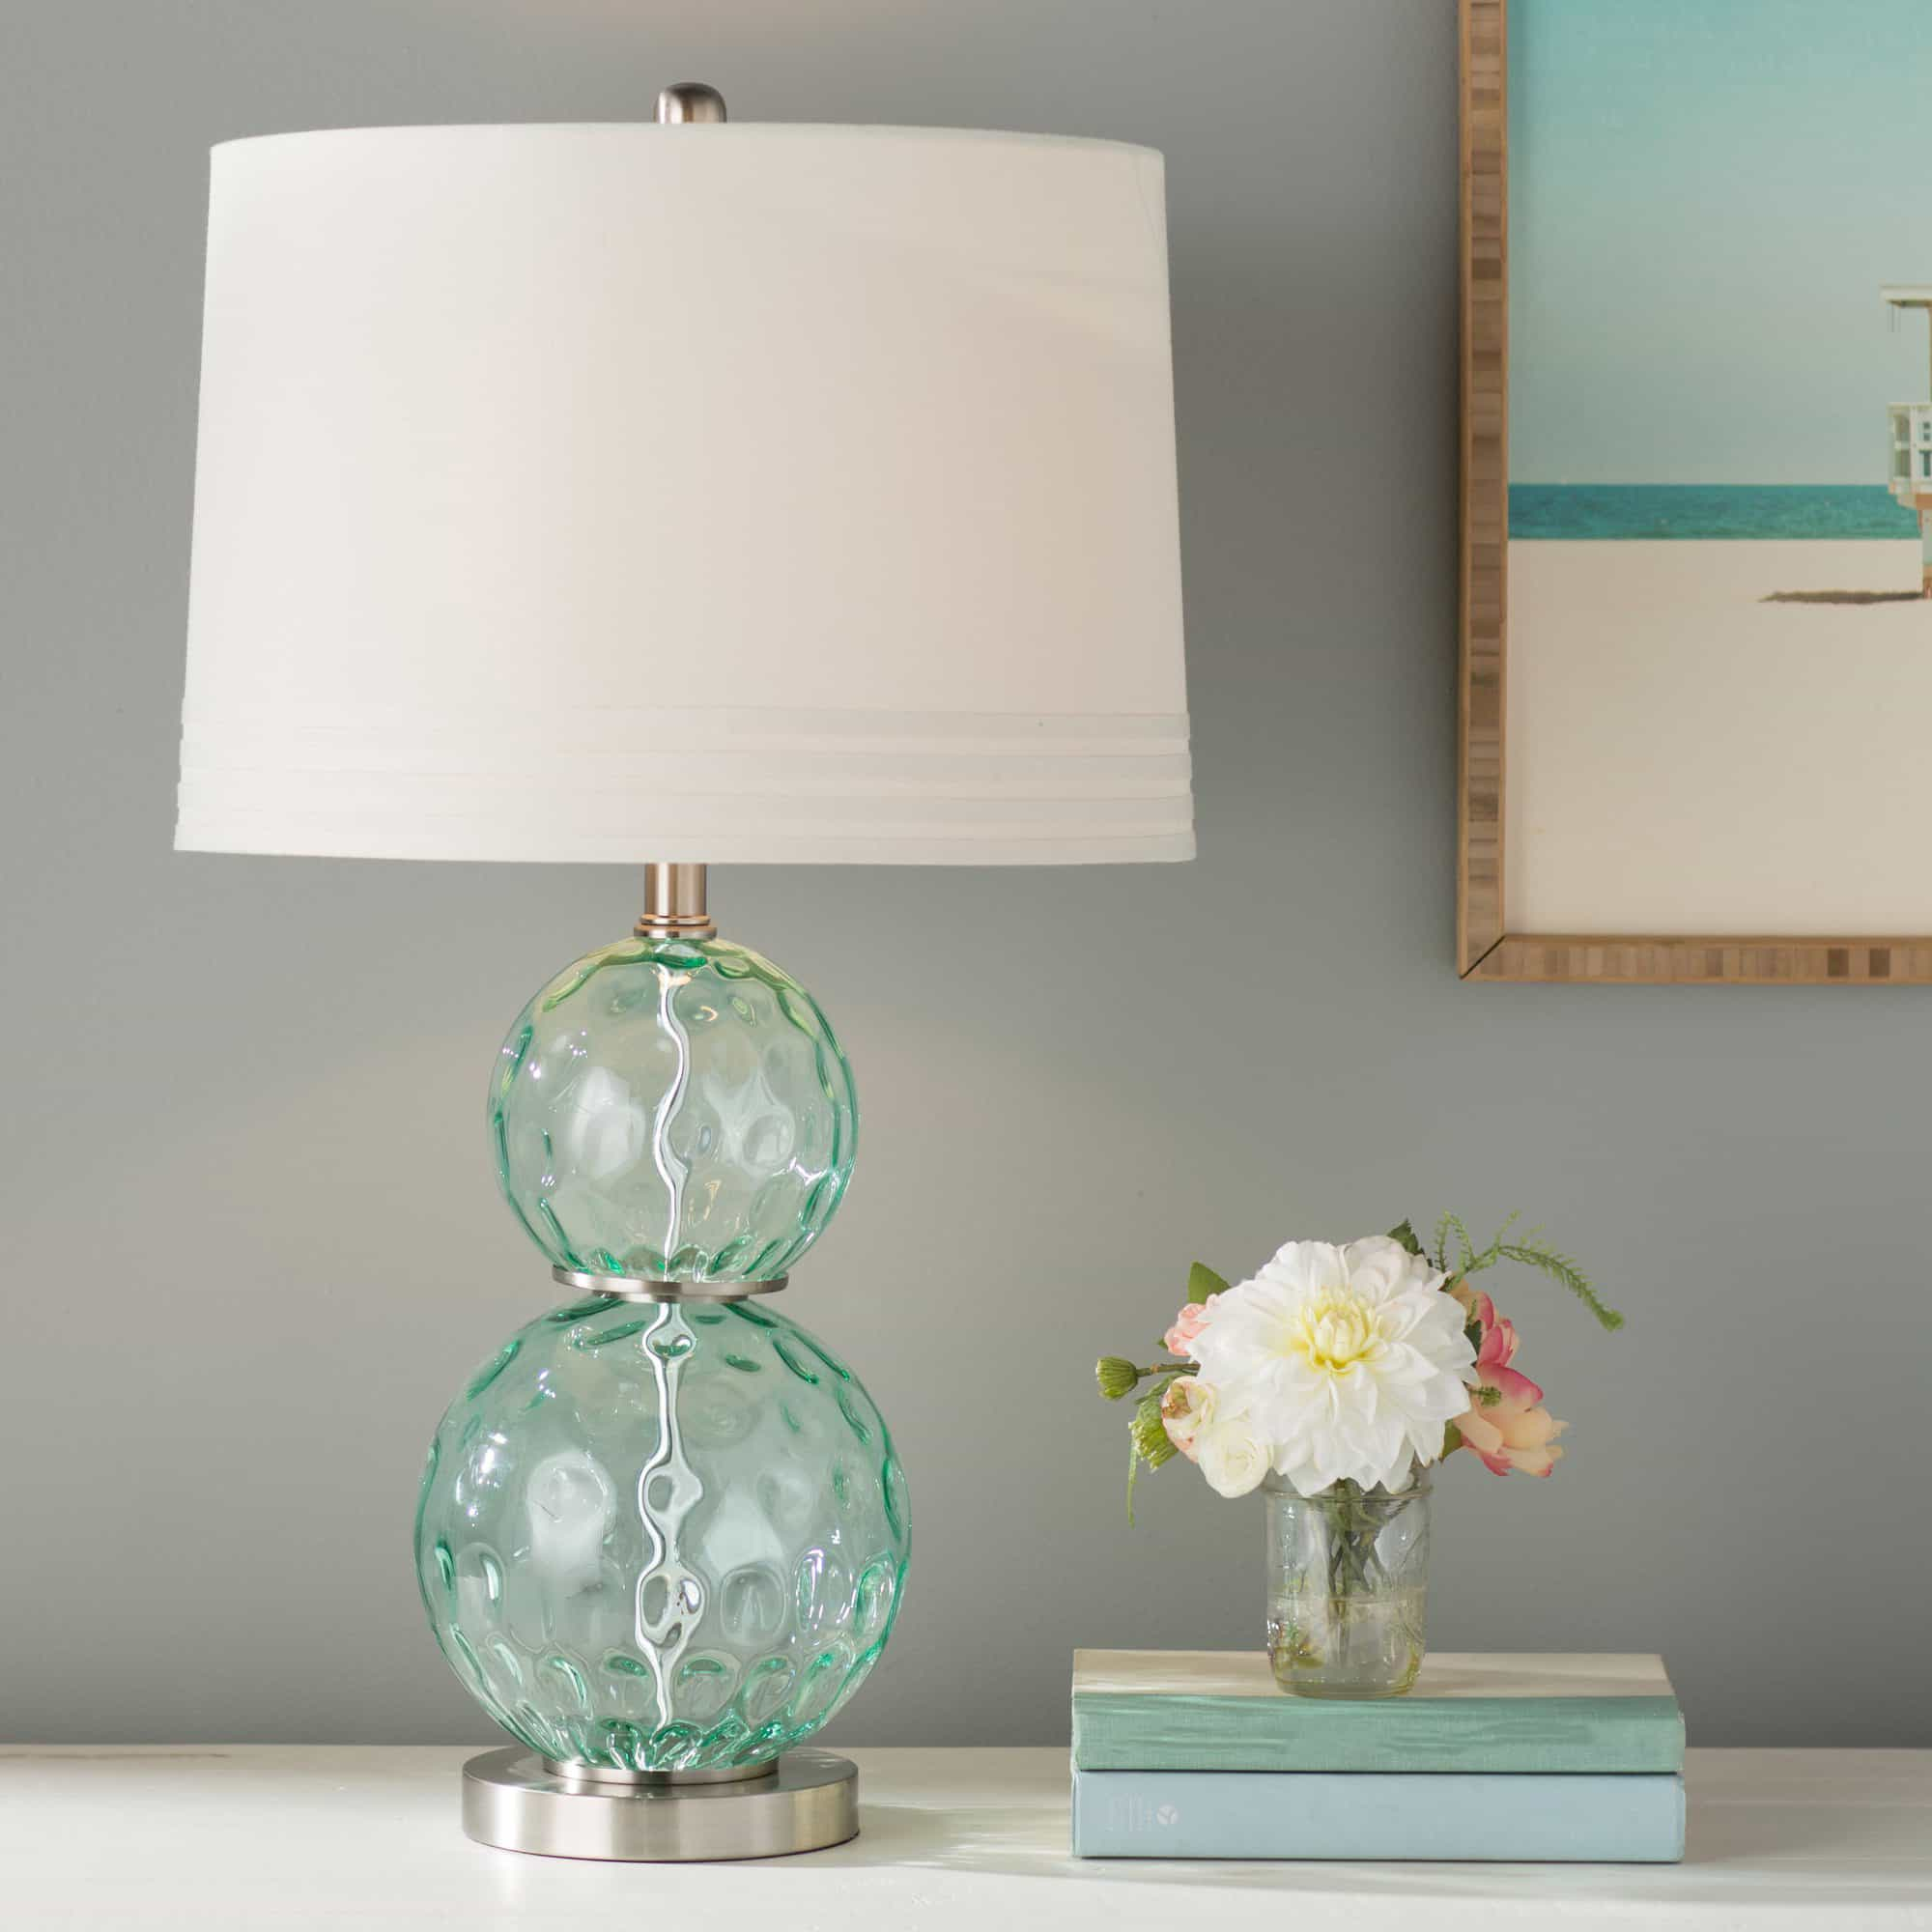 Glass Crystal Country Ceramic Table Lamps (#4 of 5)